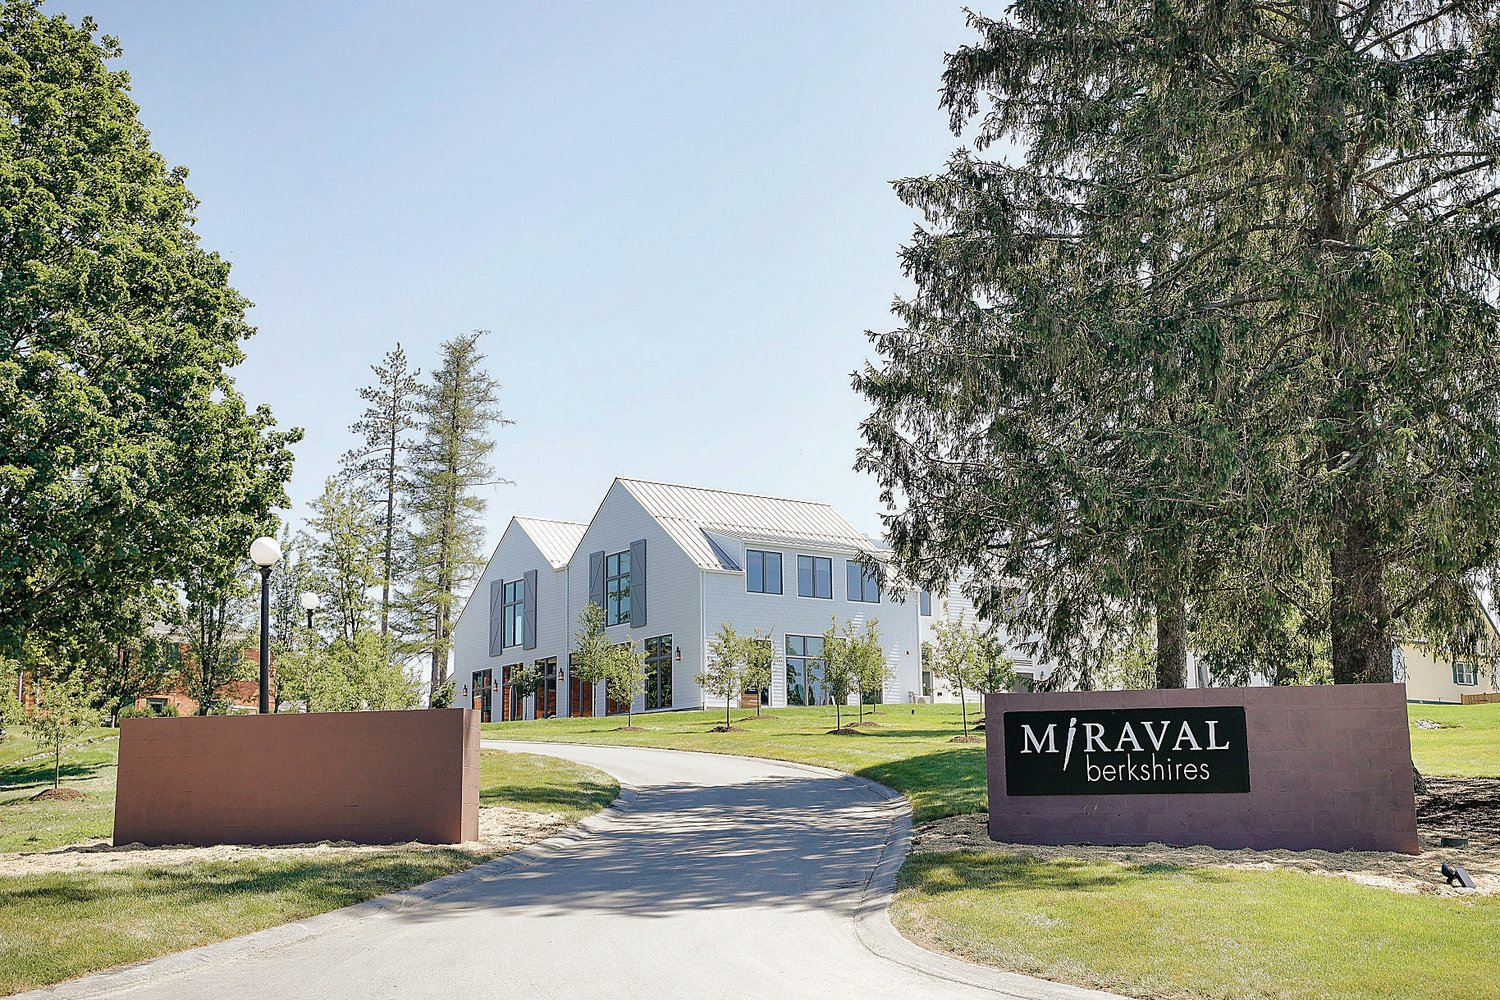 Miraval in the Berkshires